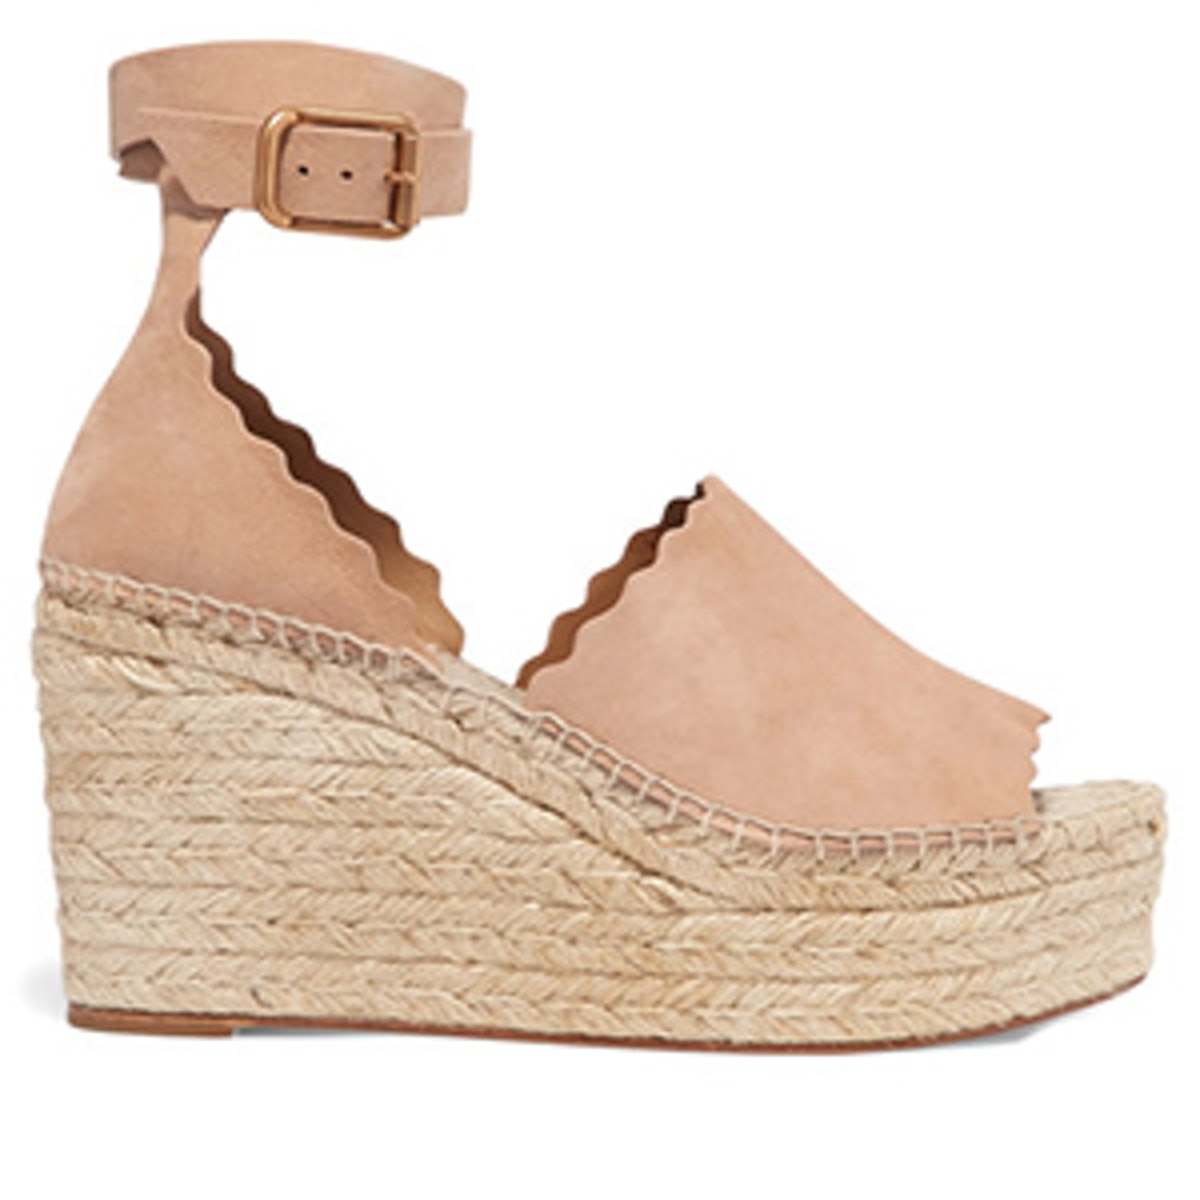 Scalloped Suede Espadrille Wedge Sandals